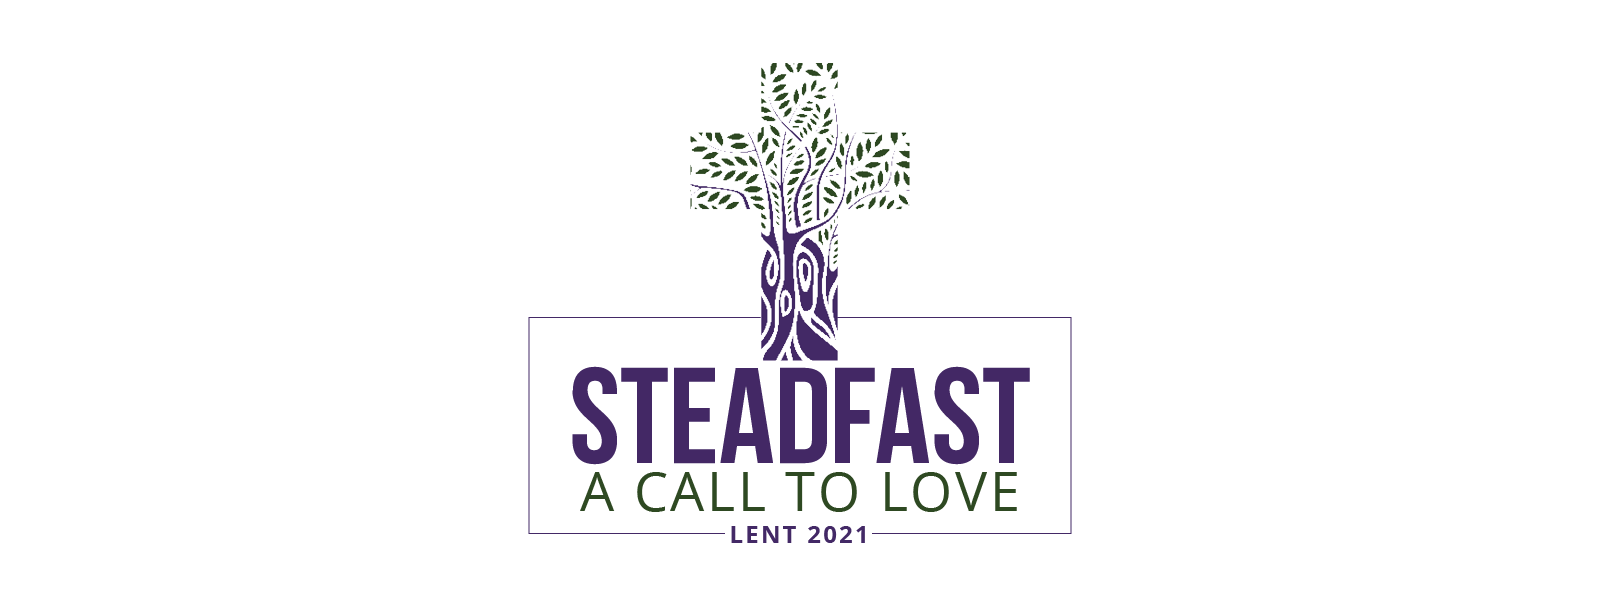 Lent-2021-Steadfast-Web-Header-White-.png